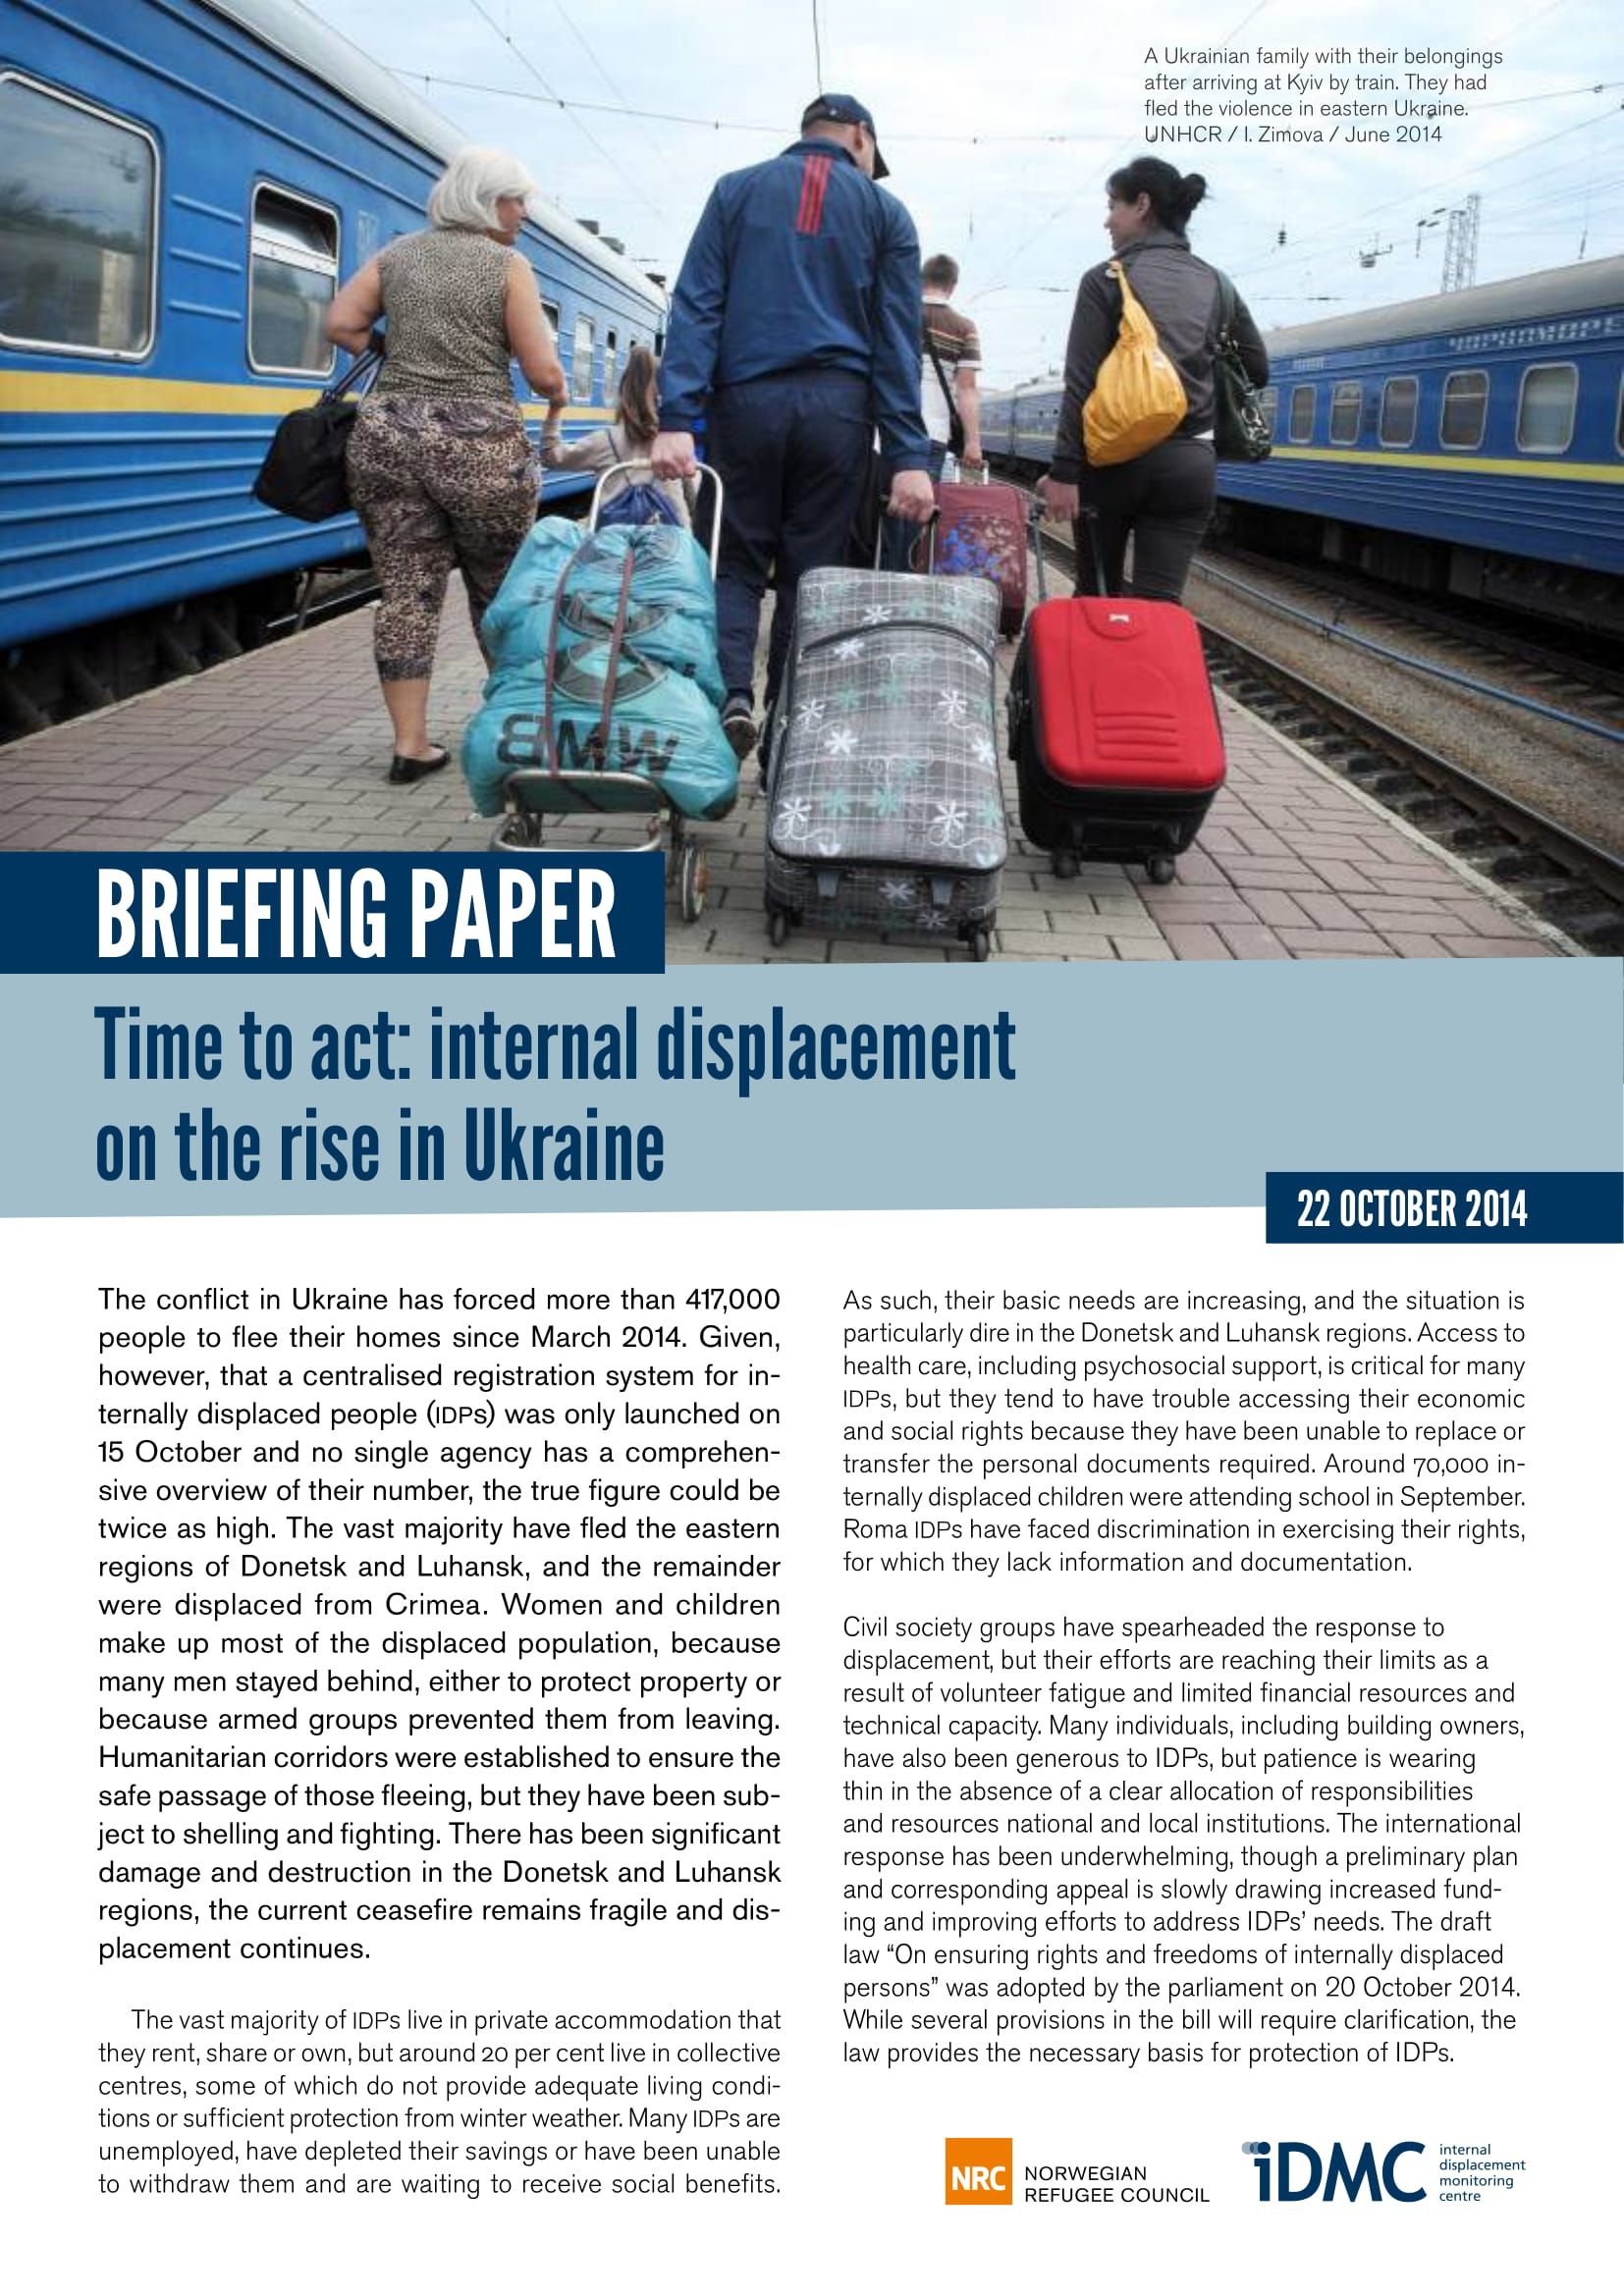 Time to act: internal displacement  on the rise in Ukraine